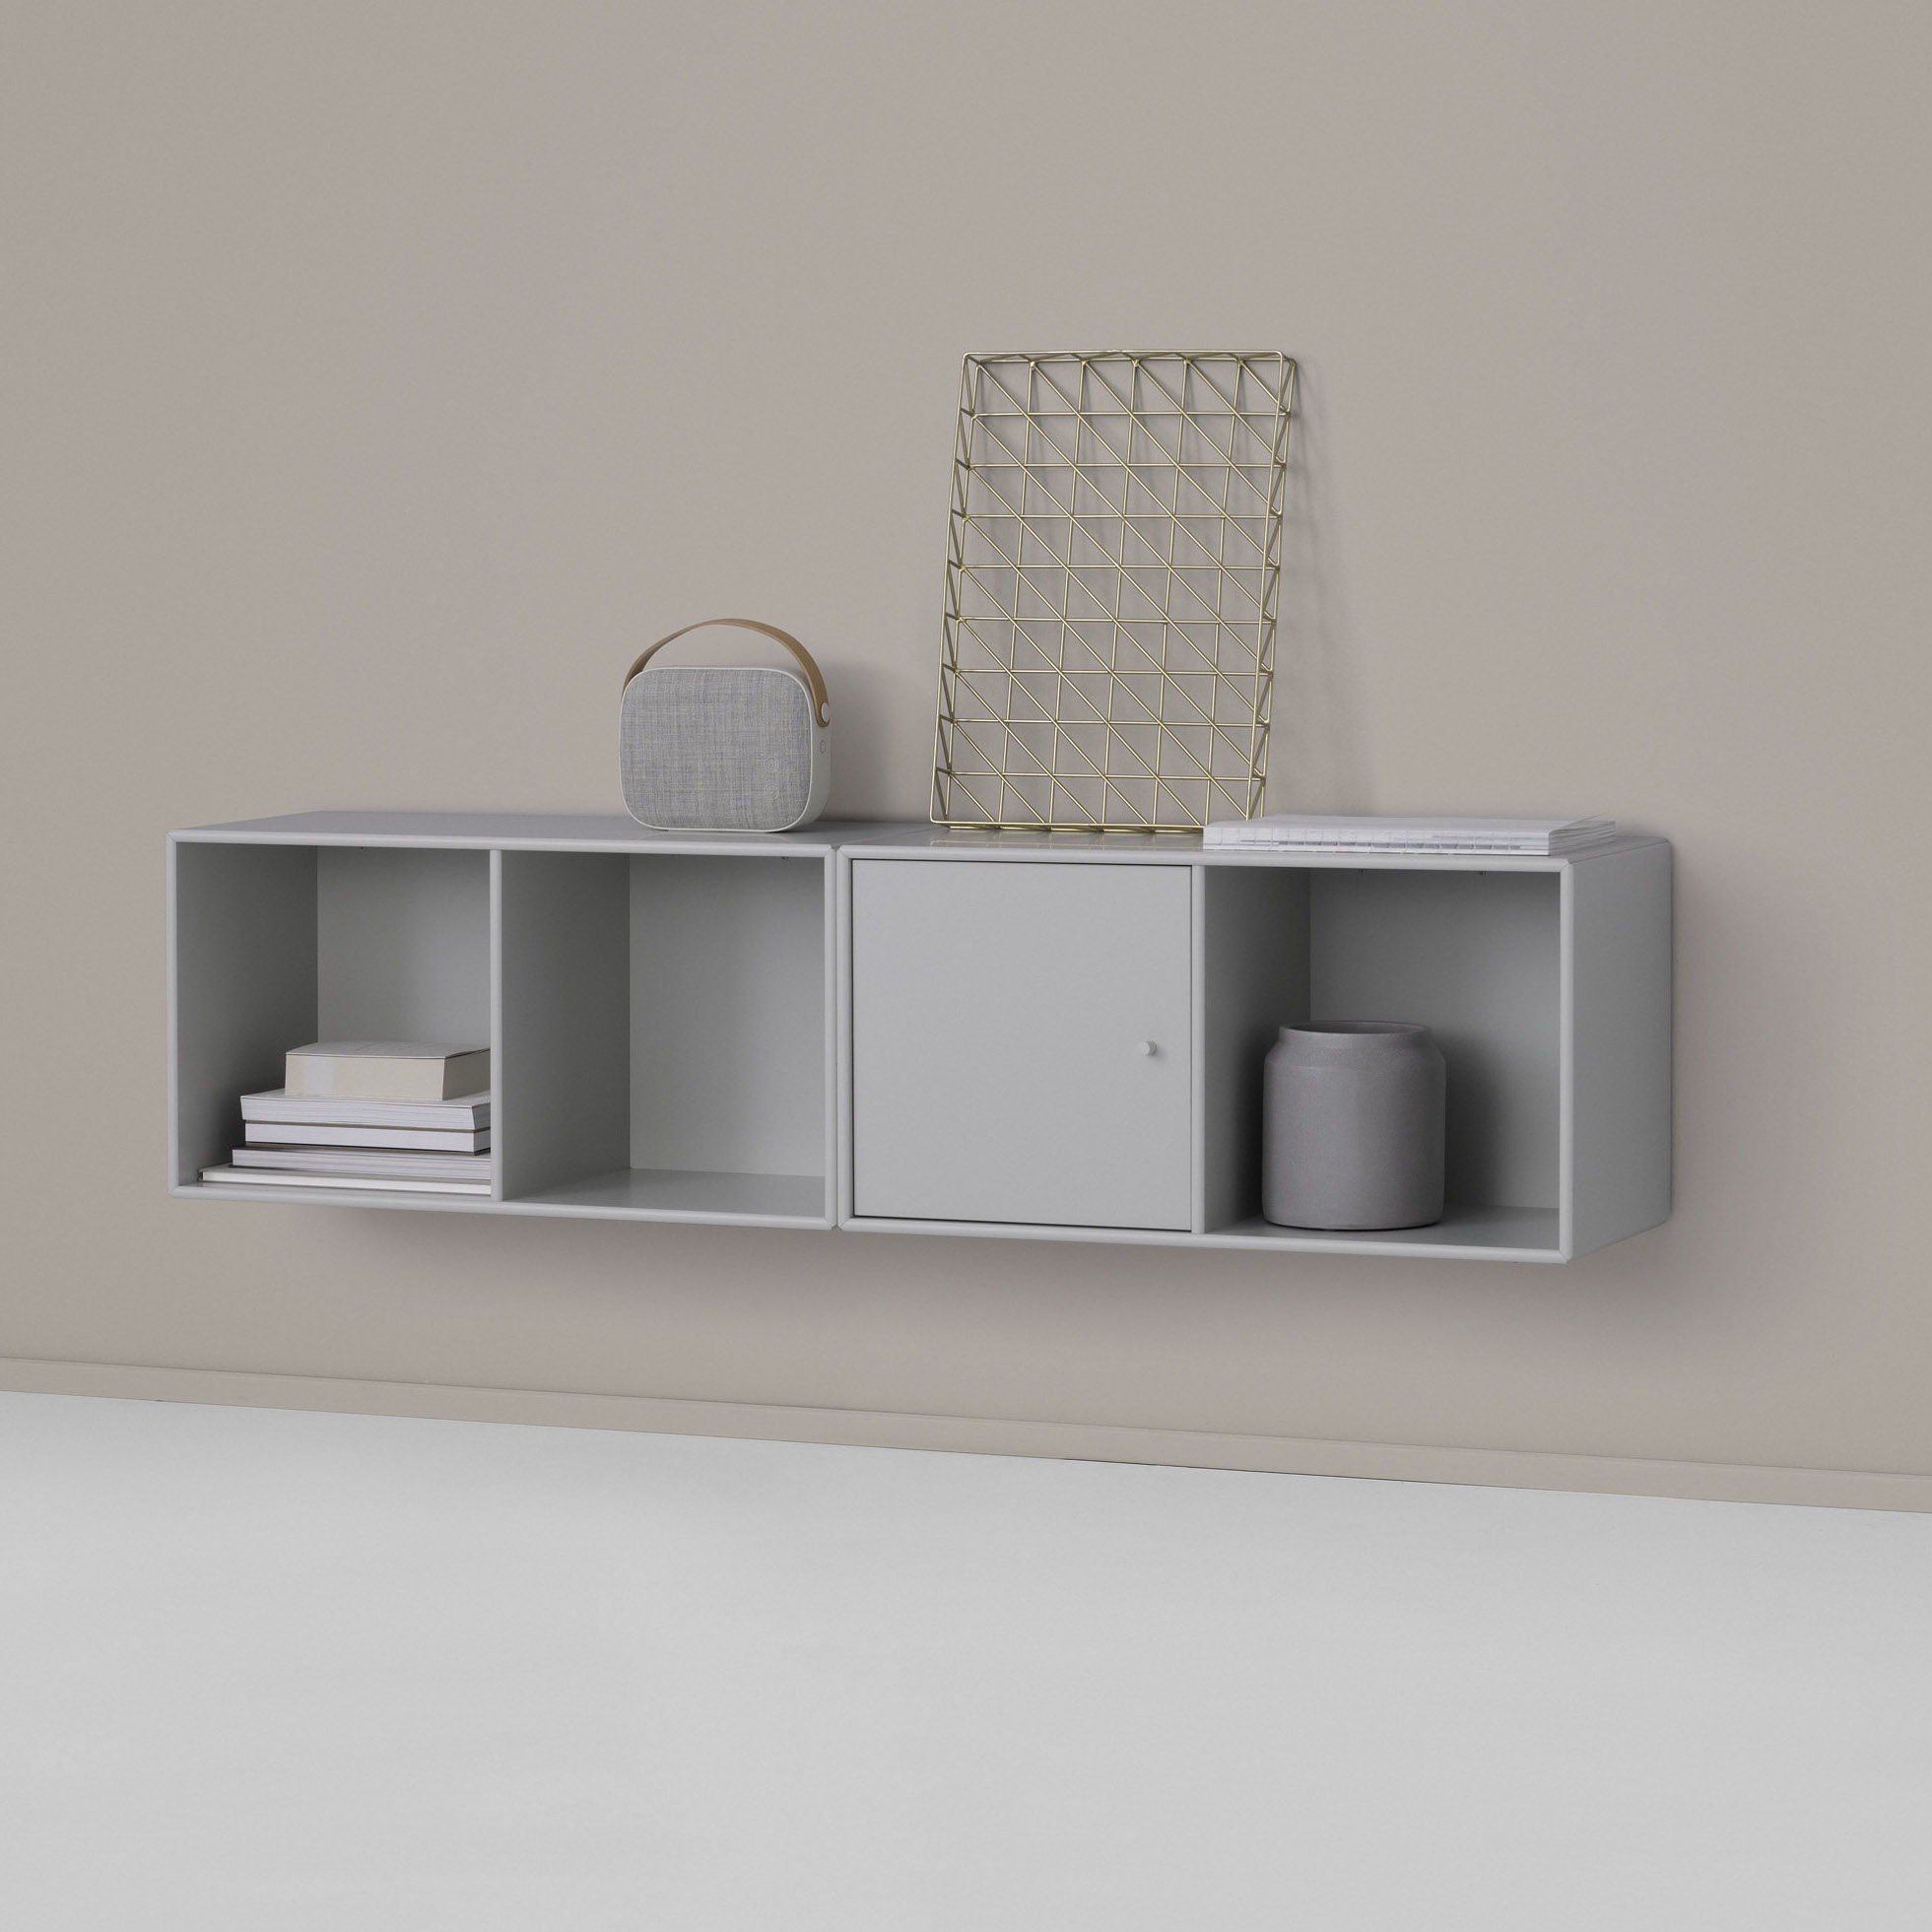 Montana m bler line wall shelf design peter j lassen for Scandic design